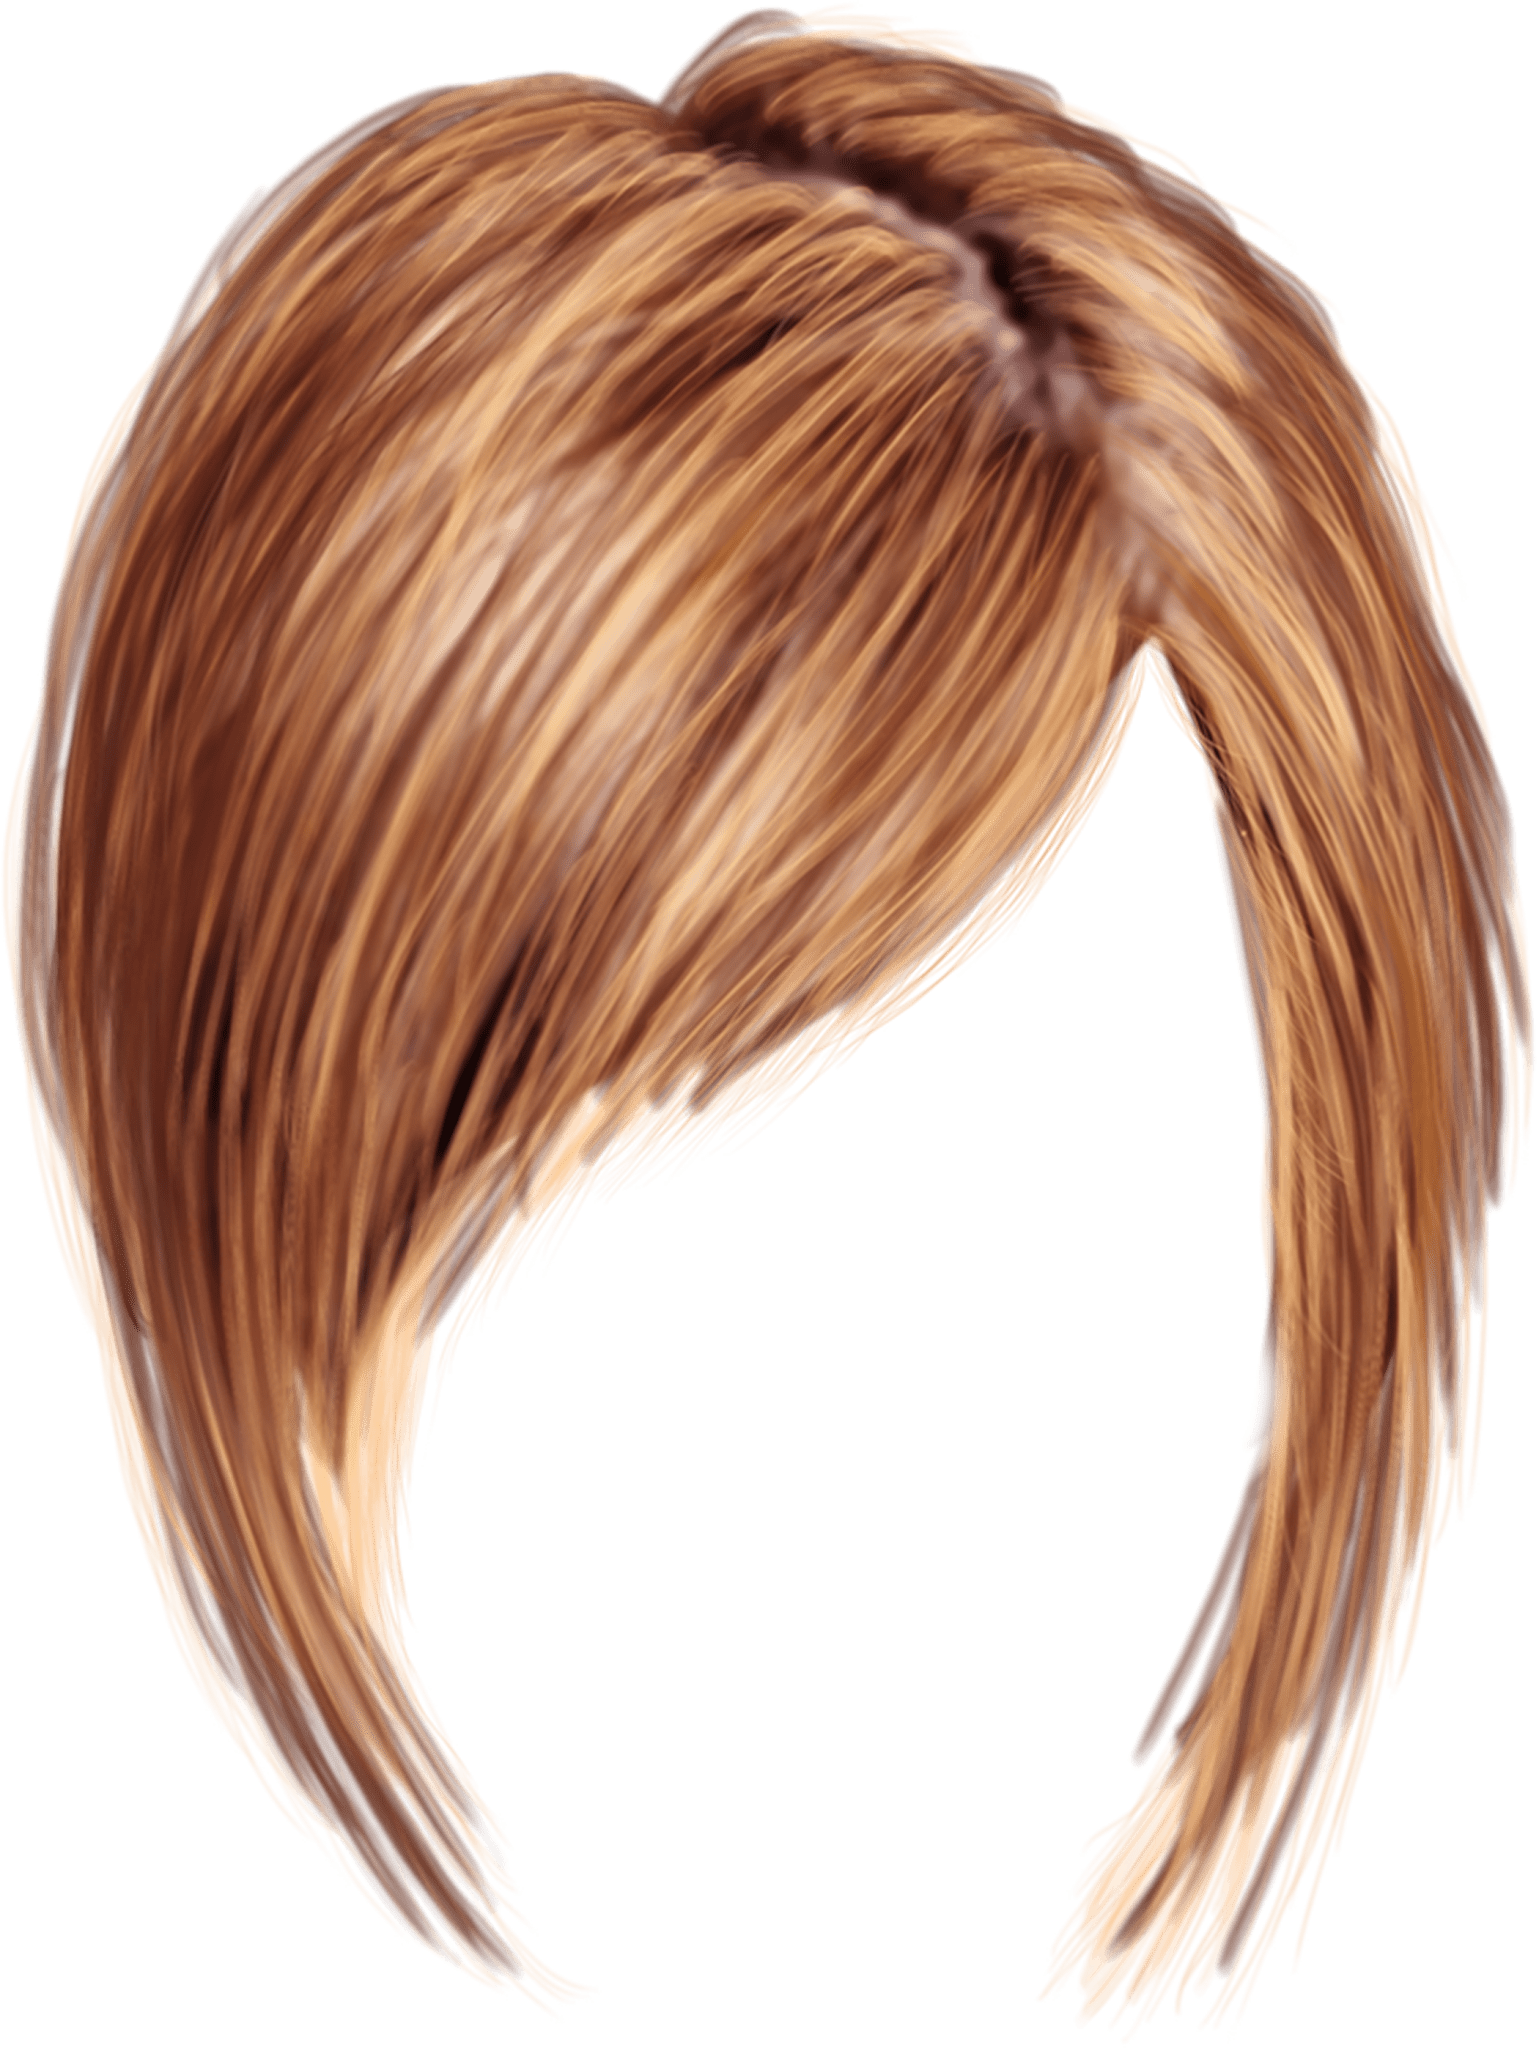 short women hair transparent png stickpng #12751